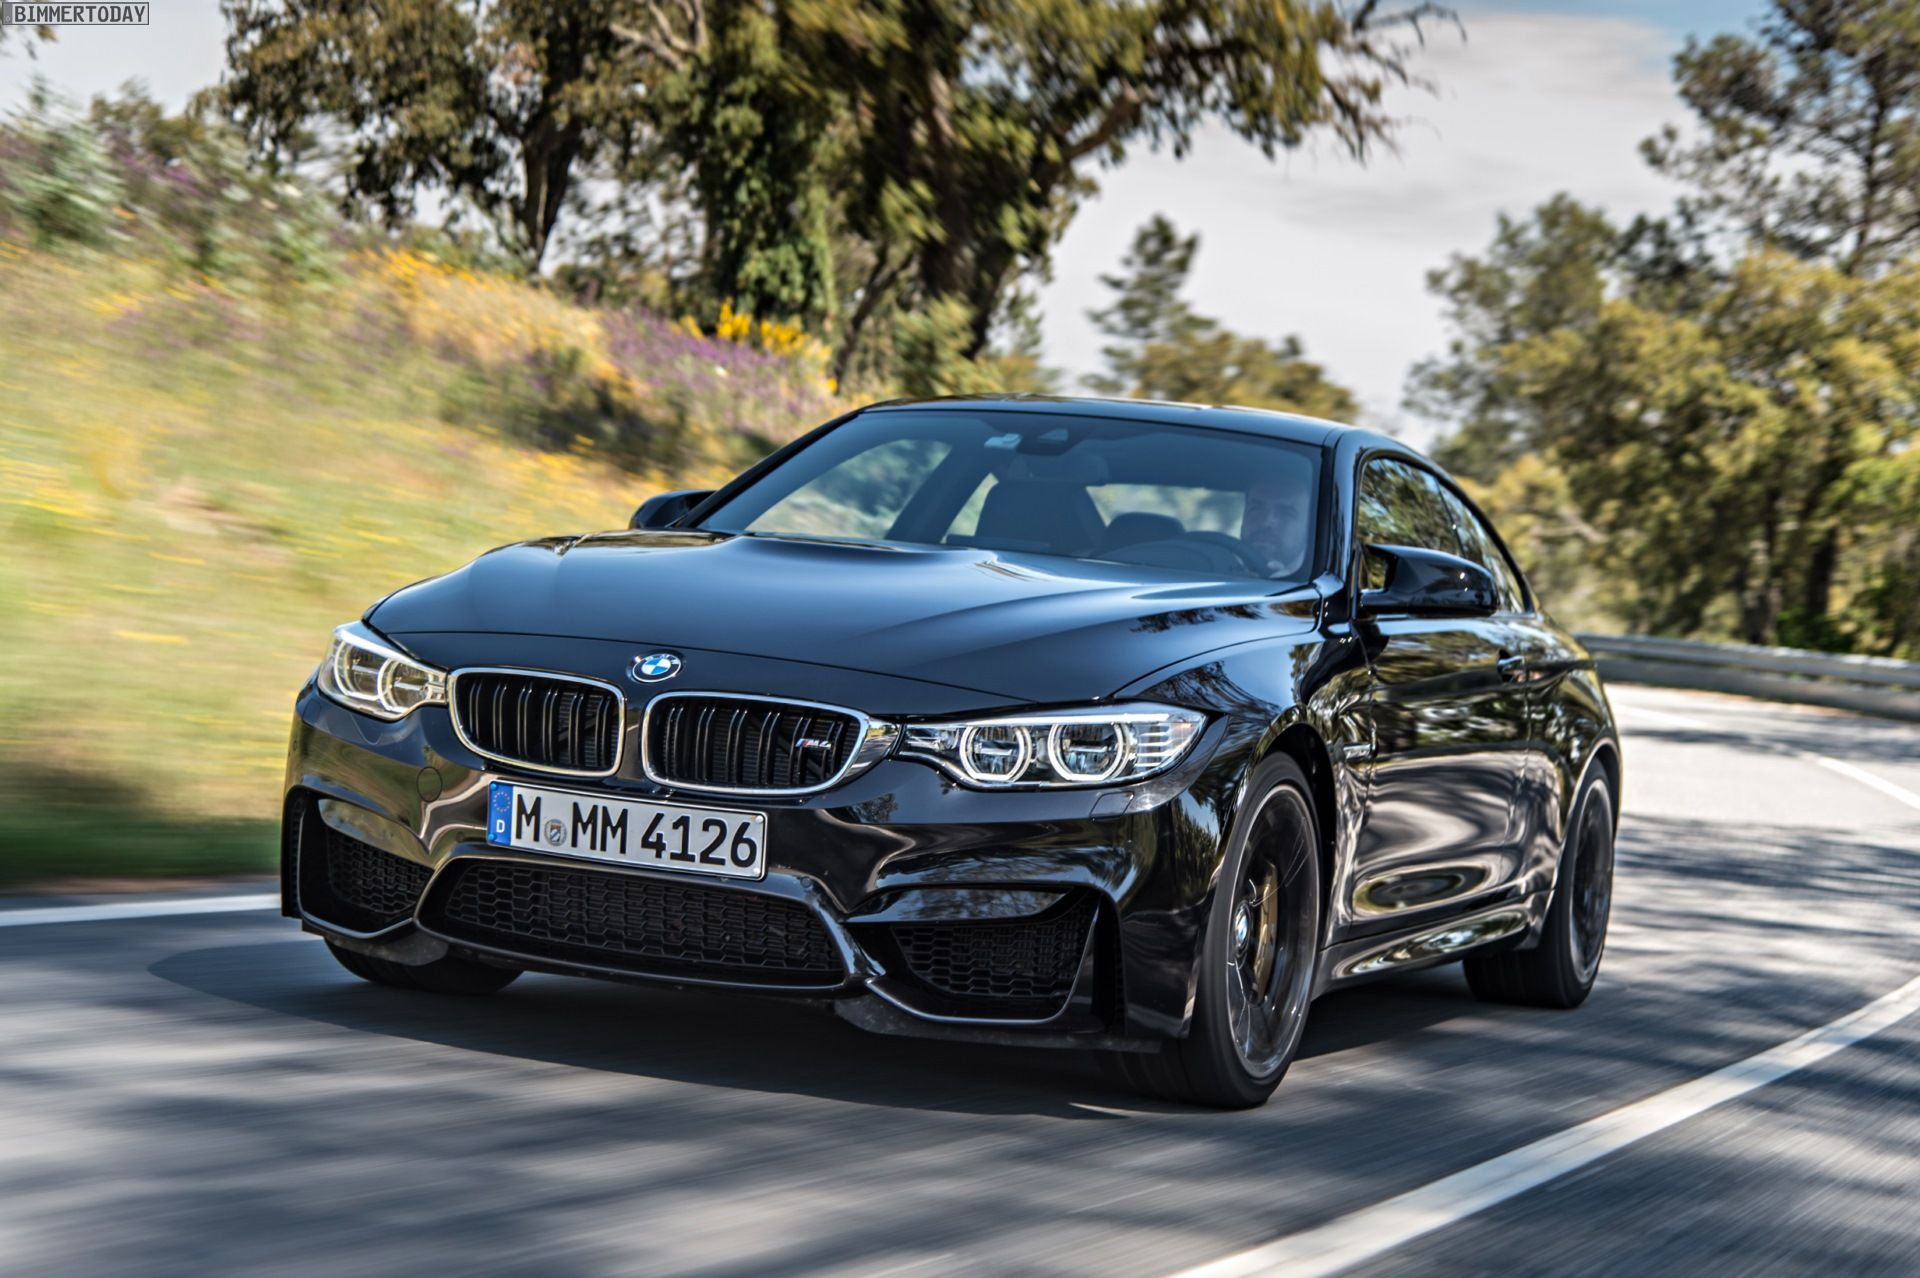 BMW M4 F82 Coupe 2014